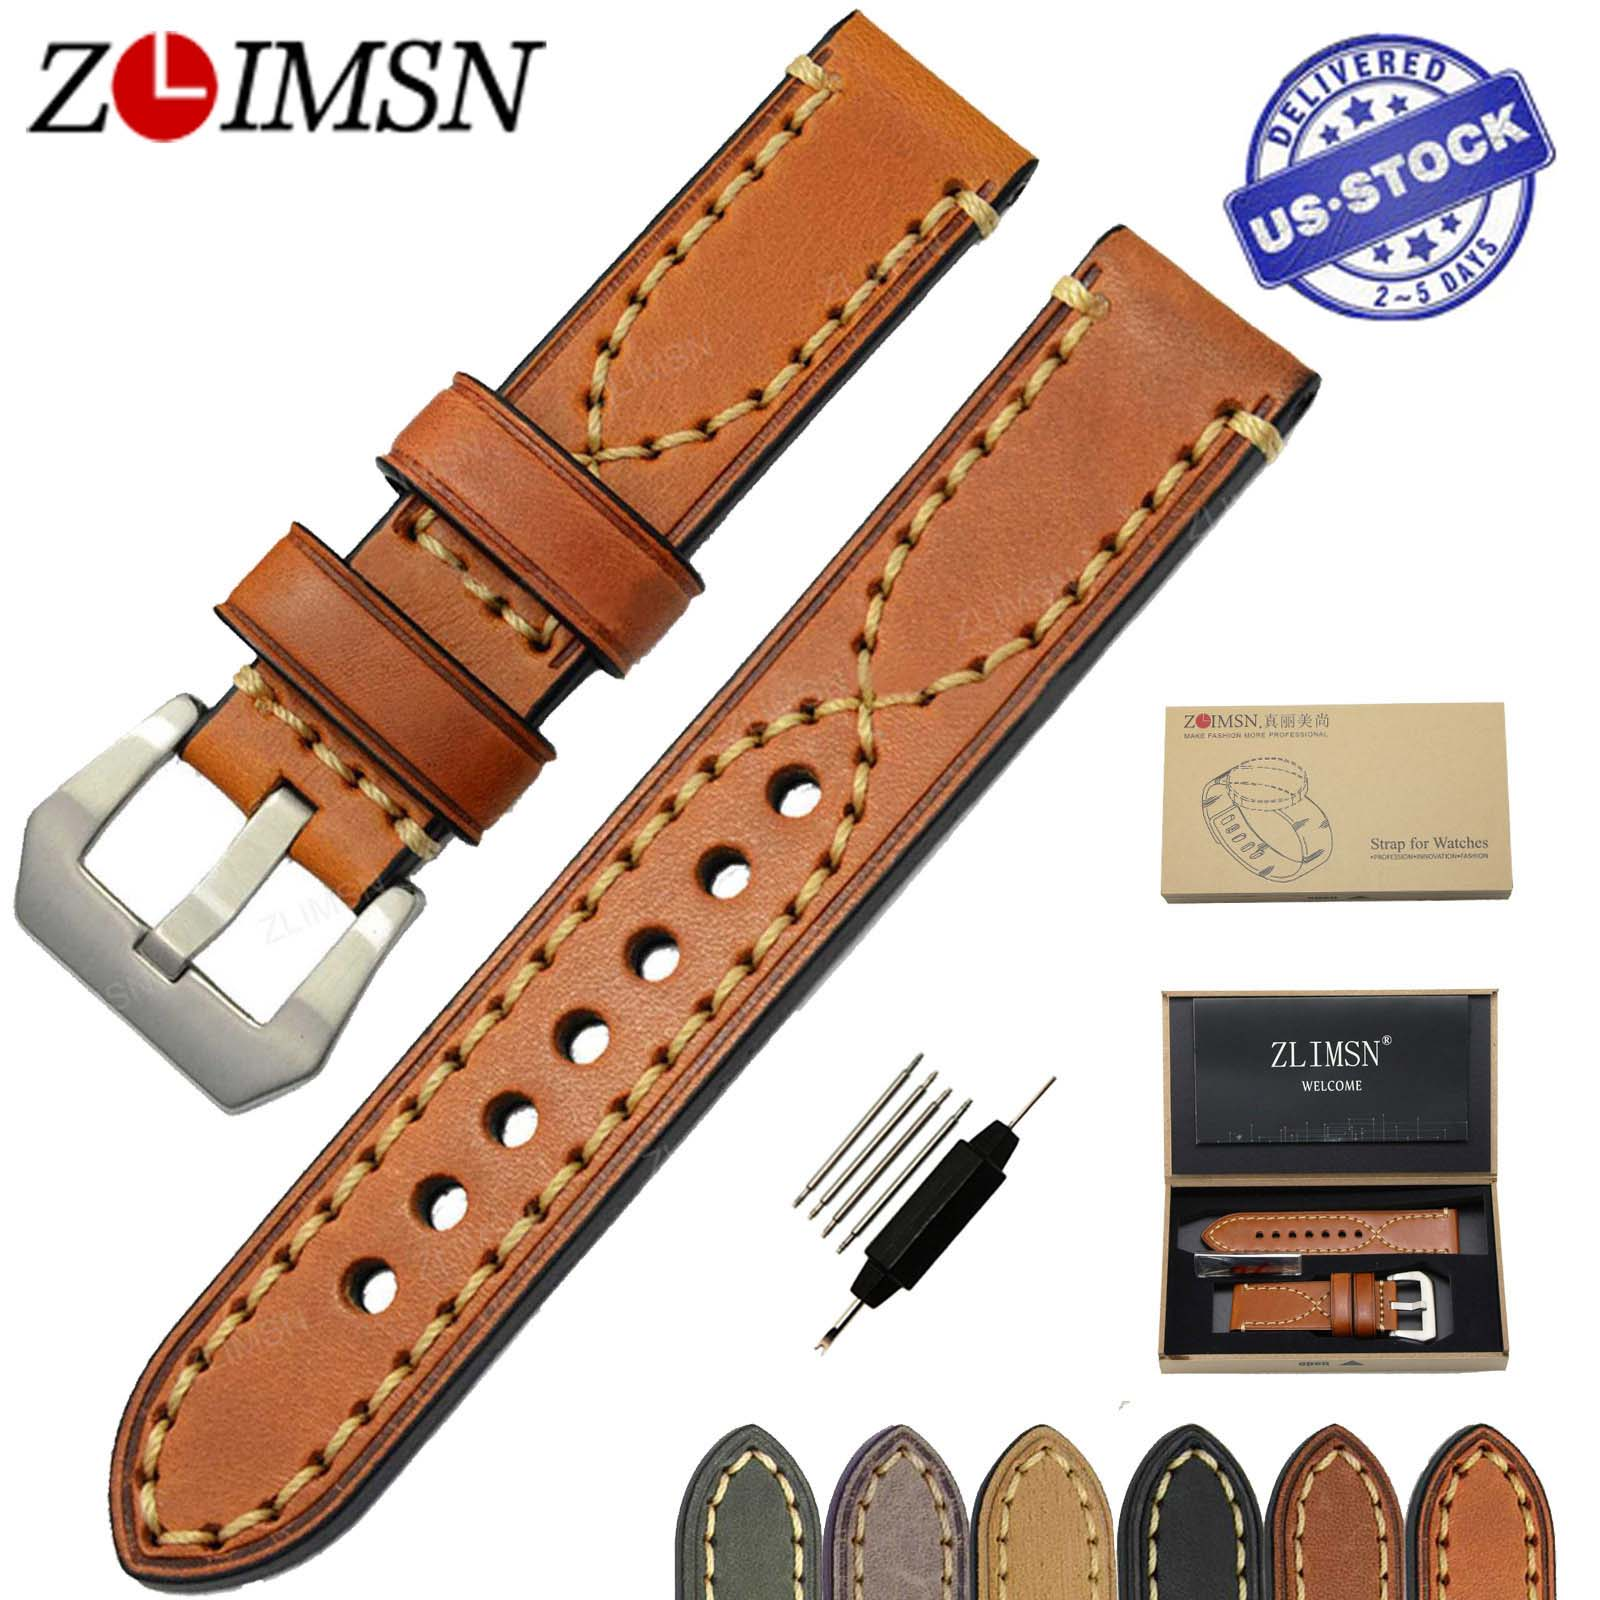 ZLIMSN Genuine Leather Watchband Relacement 20 22 24 26mm <font><b>Men</b></font> Women Watch Band Strap Stainless Steel Buckle relojes hombre 2017